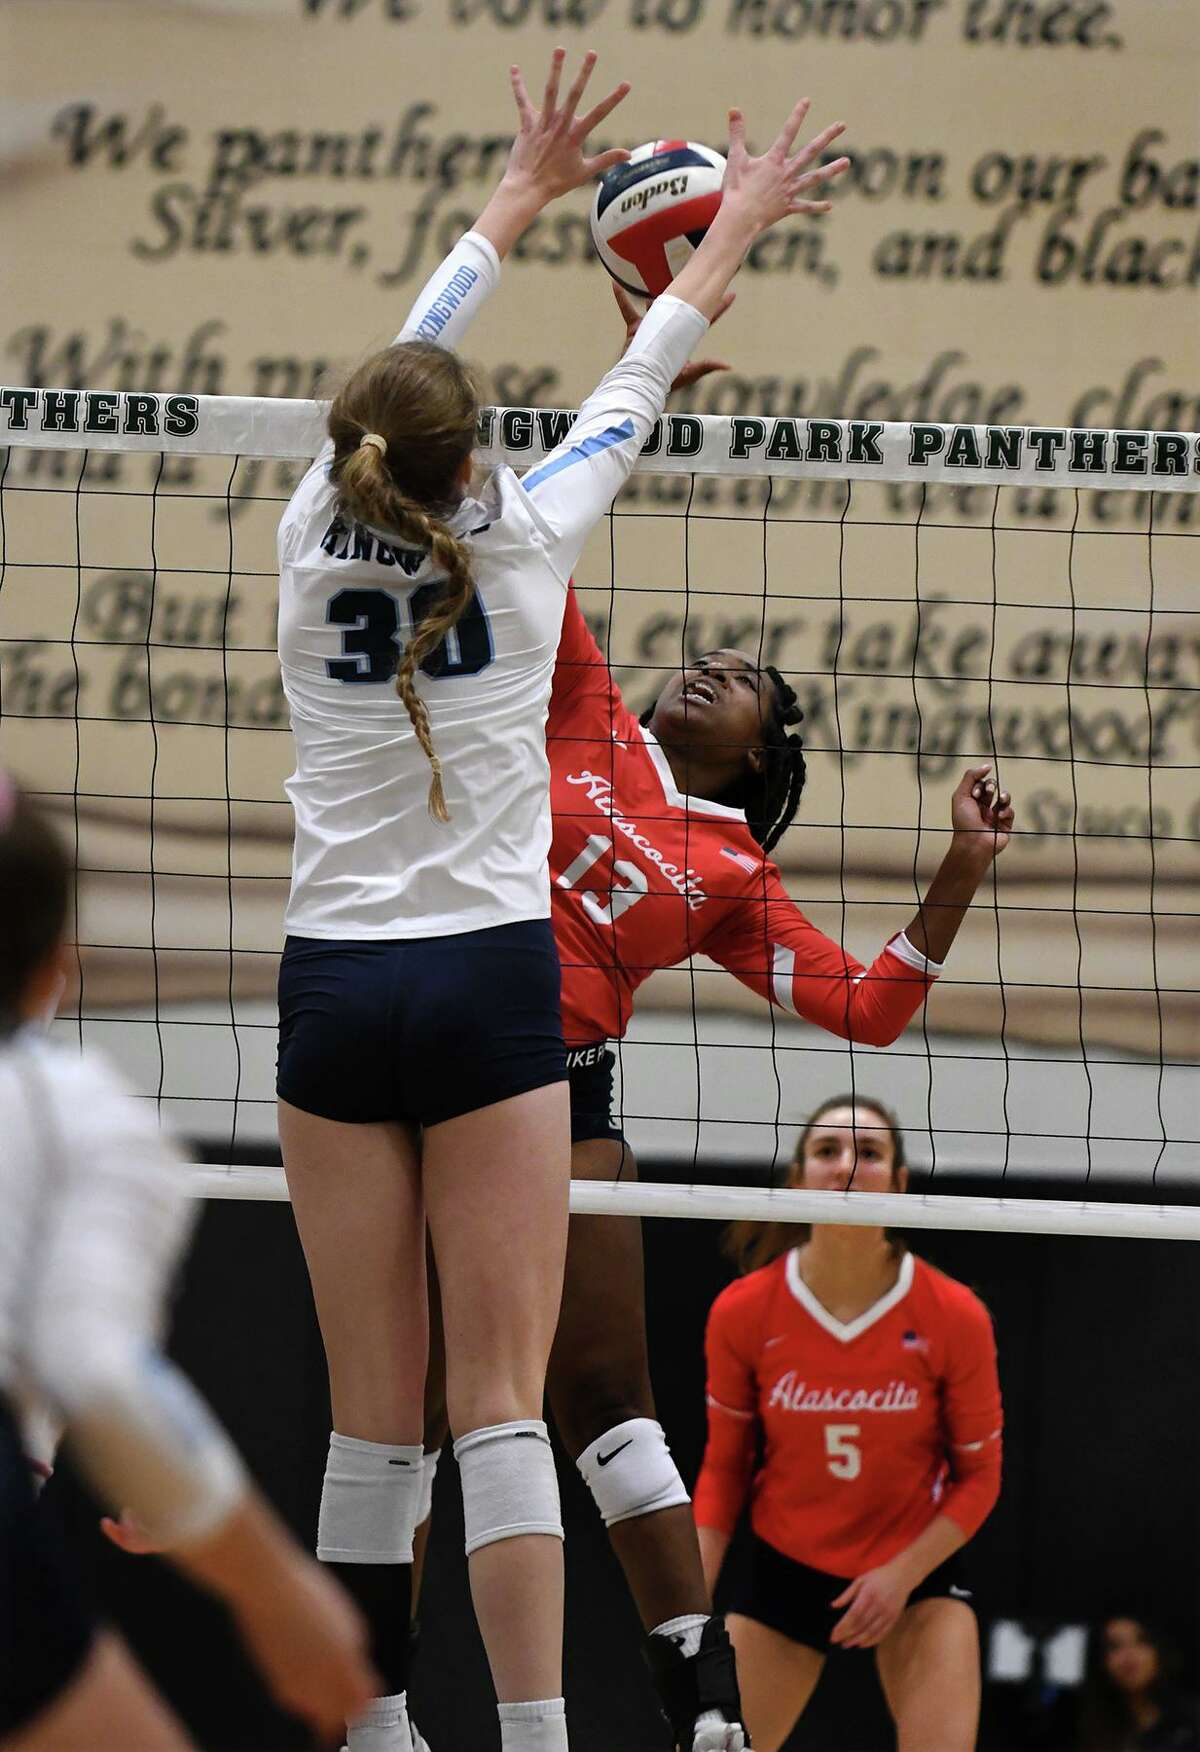 Atascocita senior outside hitter Zaire Miles (13) gets blocked by Kingwood junior middle blocker Megan Wilson (30) during the first set of their District 22-6A matchup at Kingwood Park High School on Oct. 1, 2019.